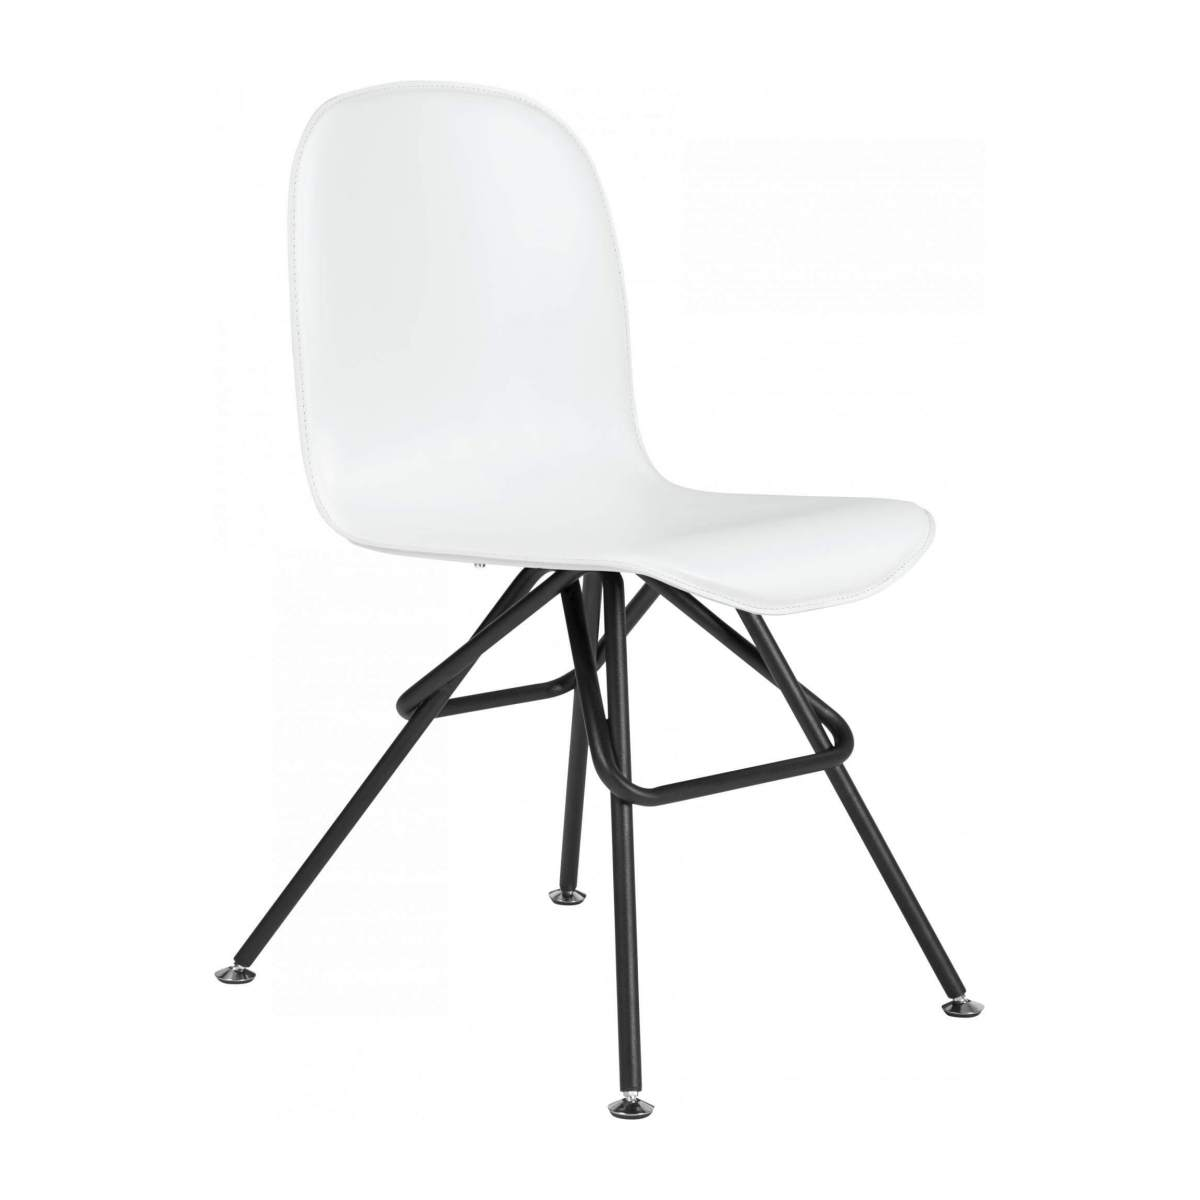 Chair with white faux leather cover and black steel legs n°2